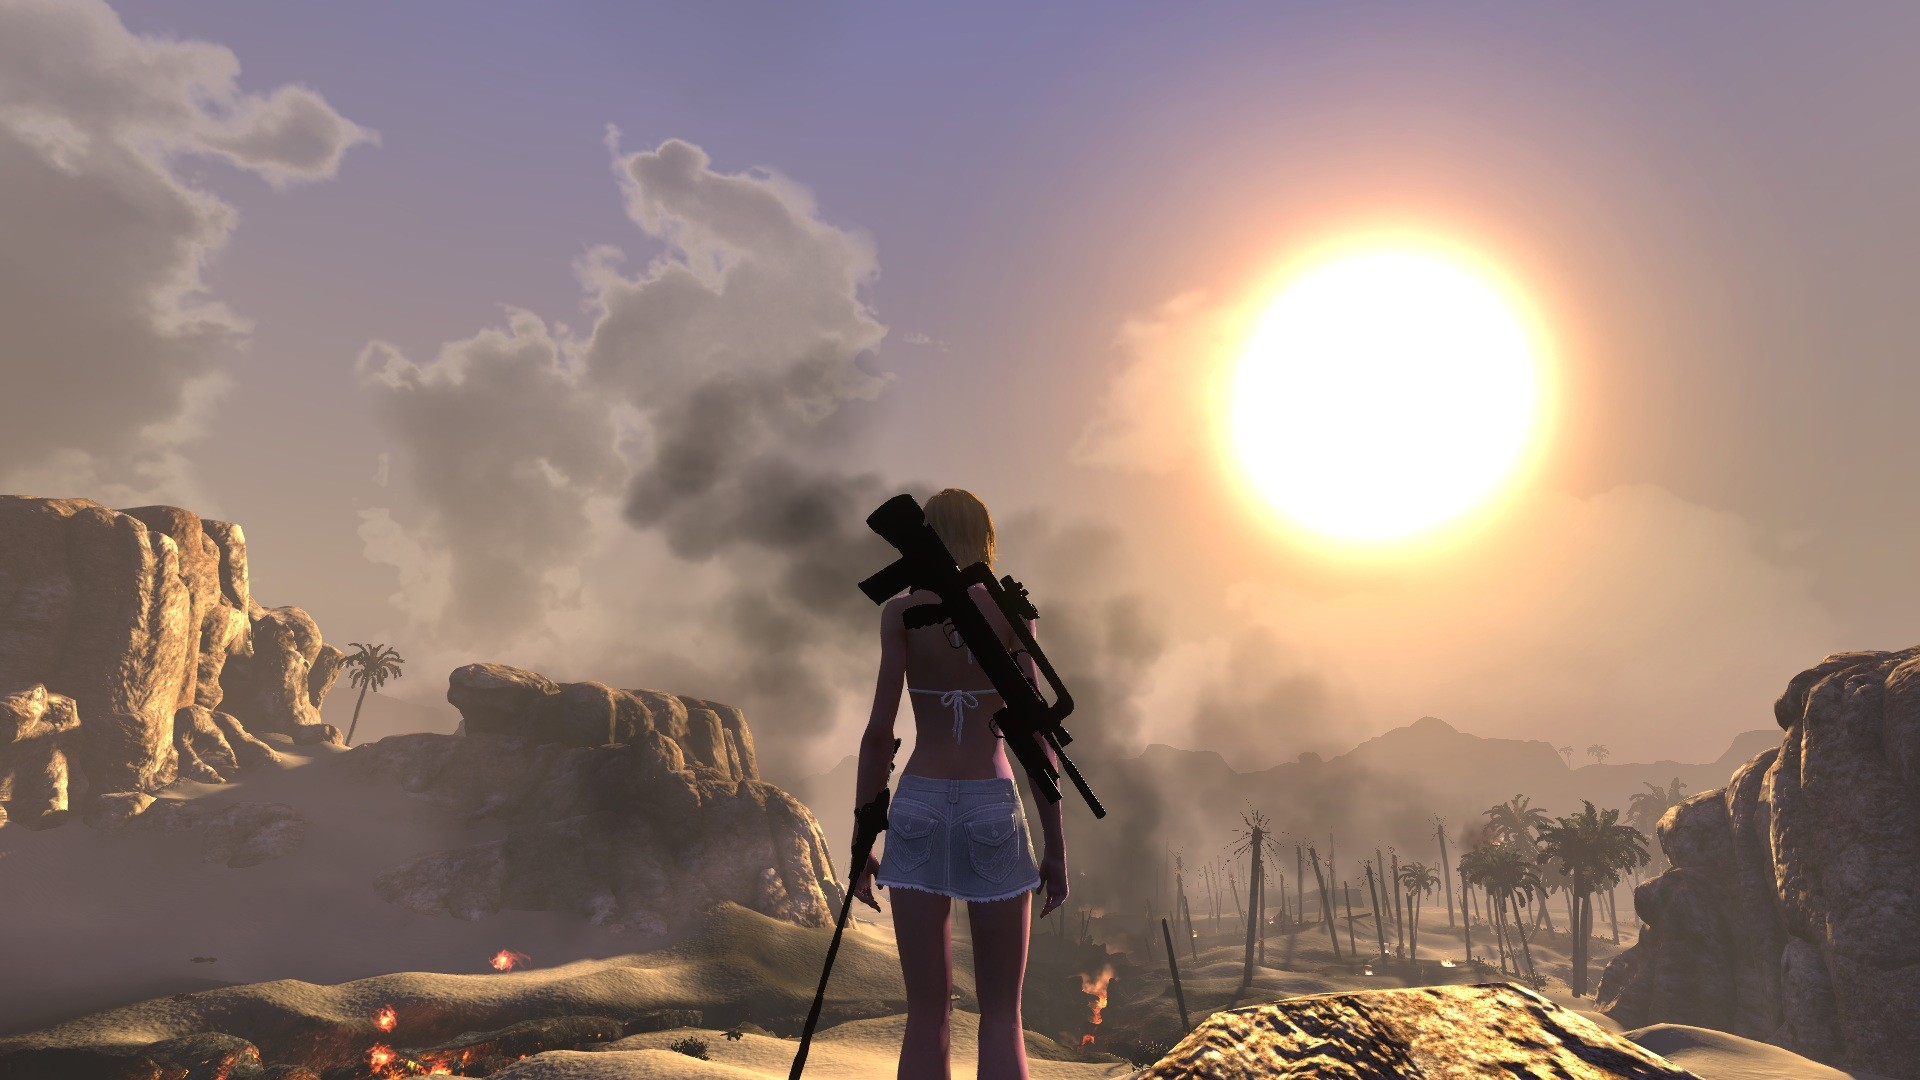 The Secret World - A hot day in the desert